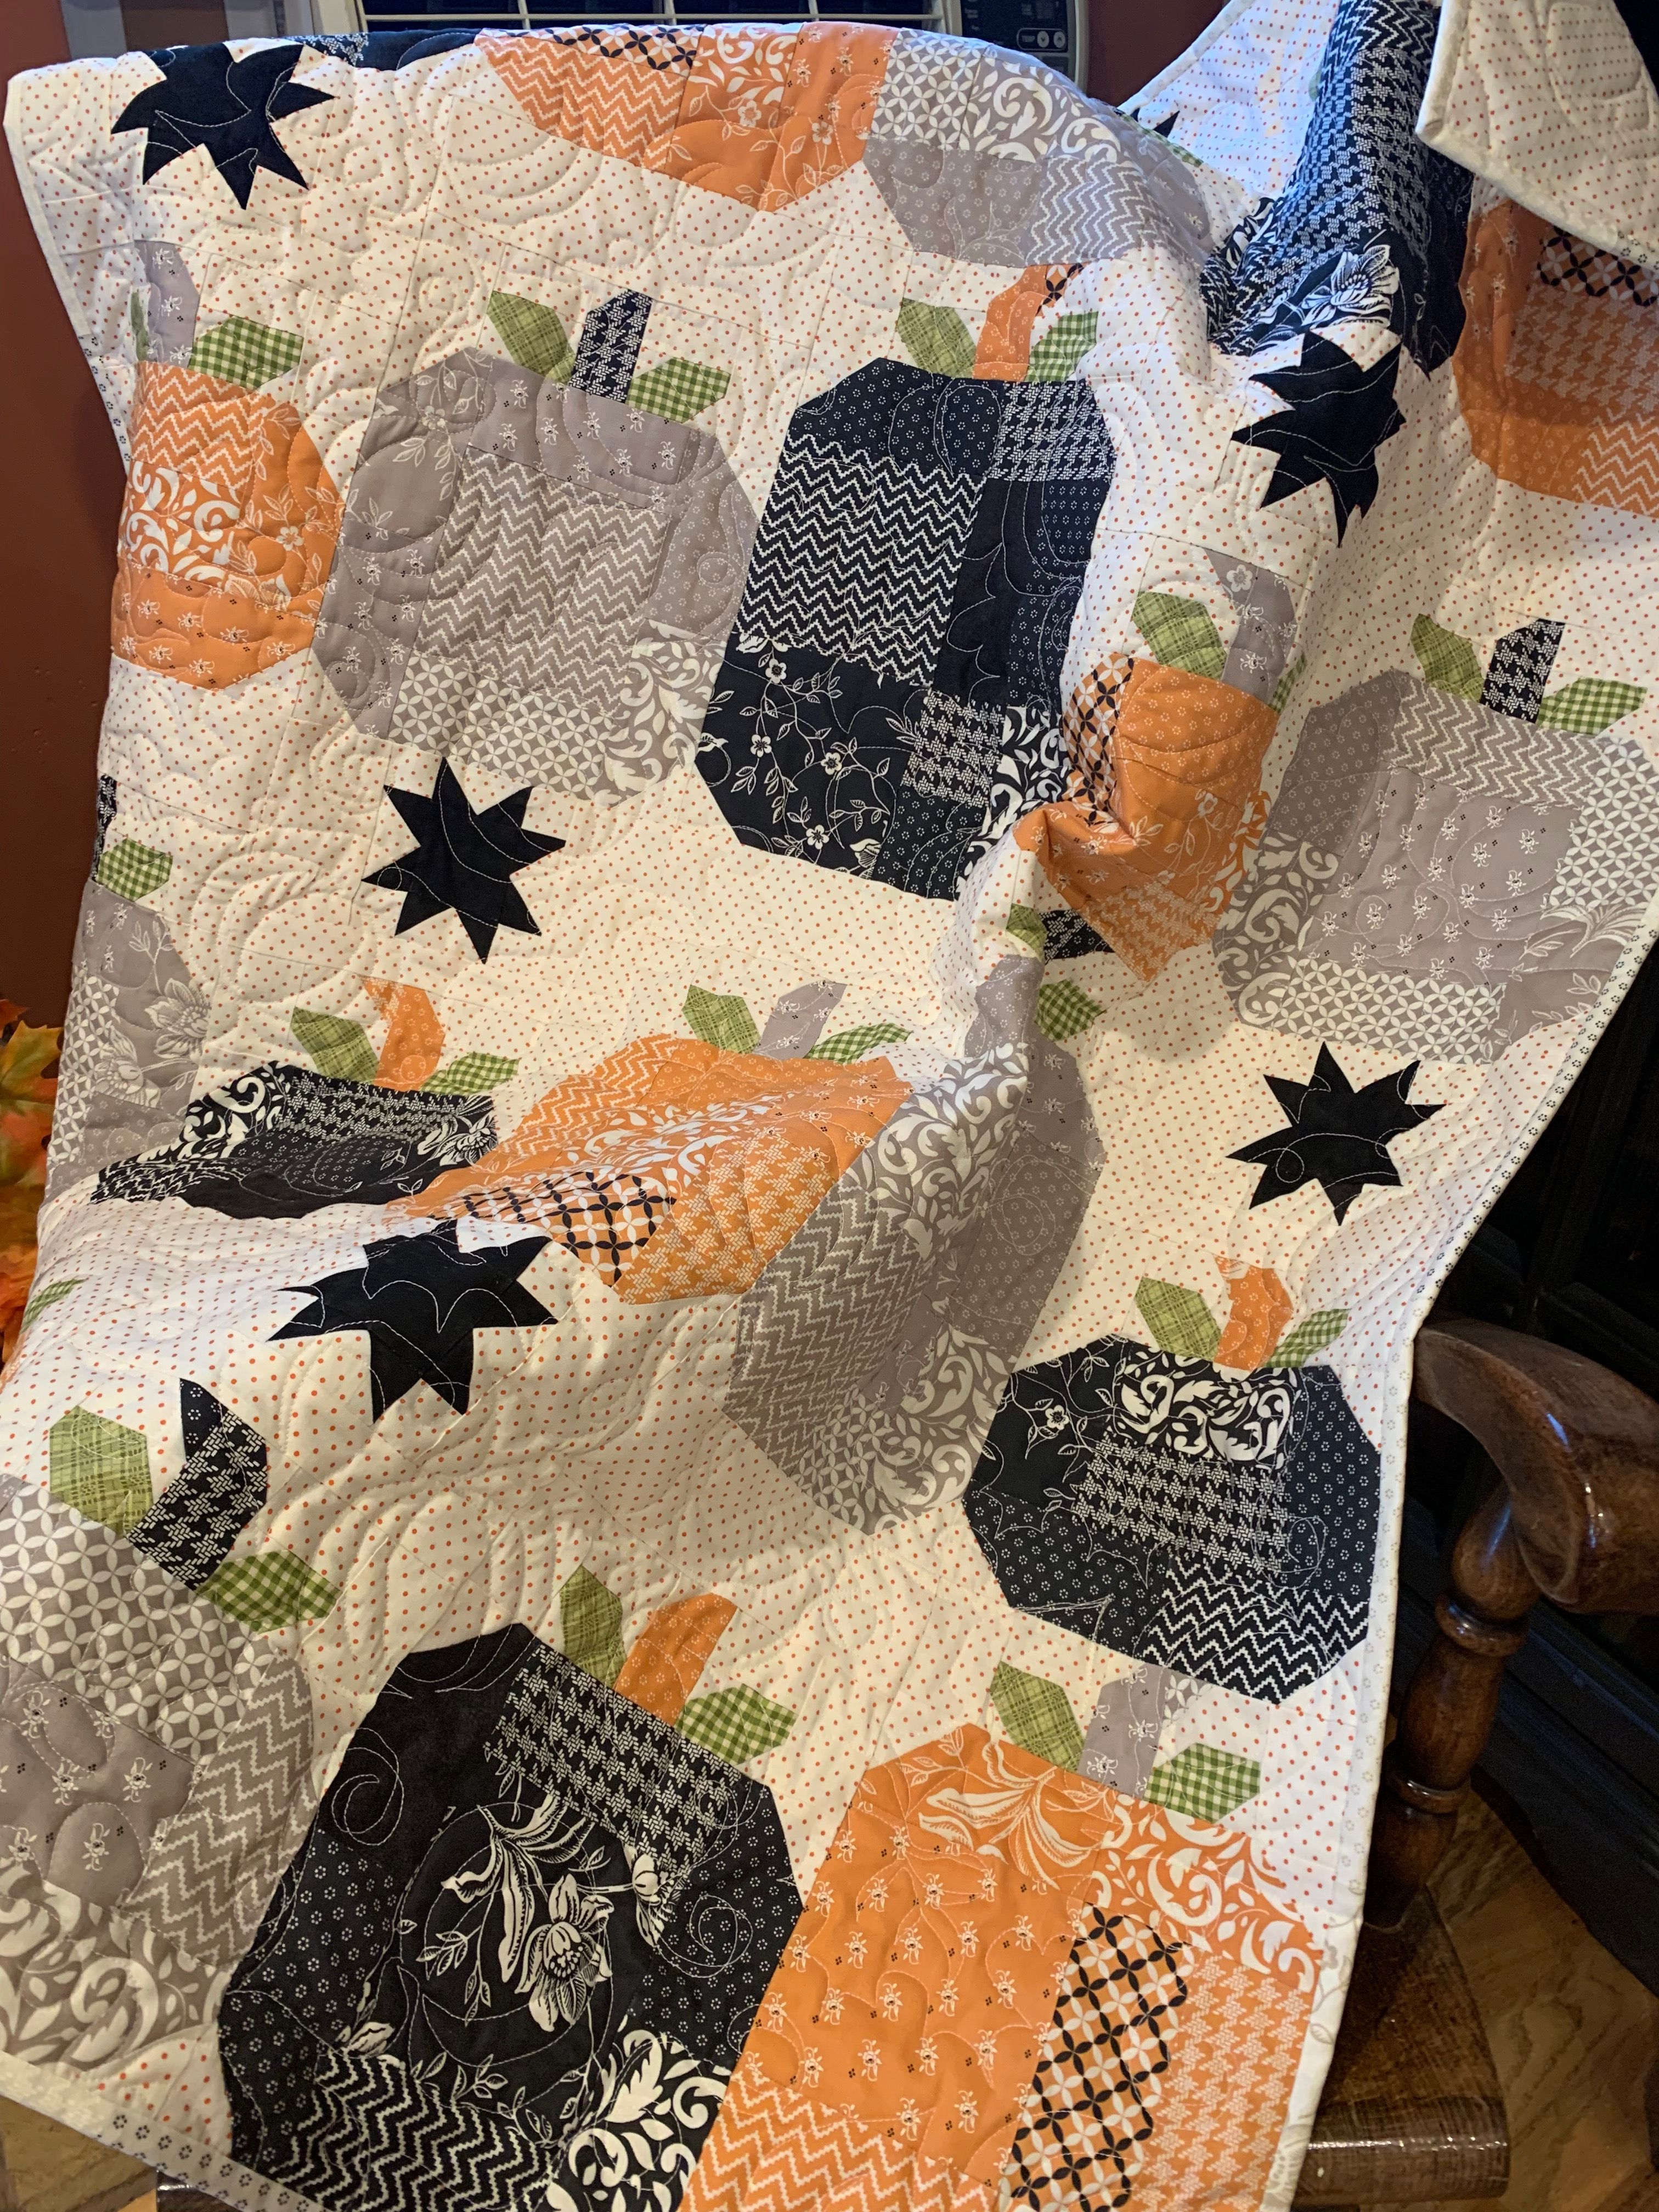 Hocus Pocus Quilt Made With All Hallows Eve Layer Cake 52 X 65 1 2 Lap Quilt Quilted In Pumpkin A Halloween Sewing Projects Halloween Sewing Quilt Patterns